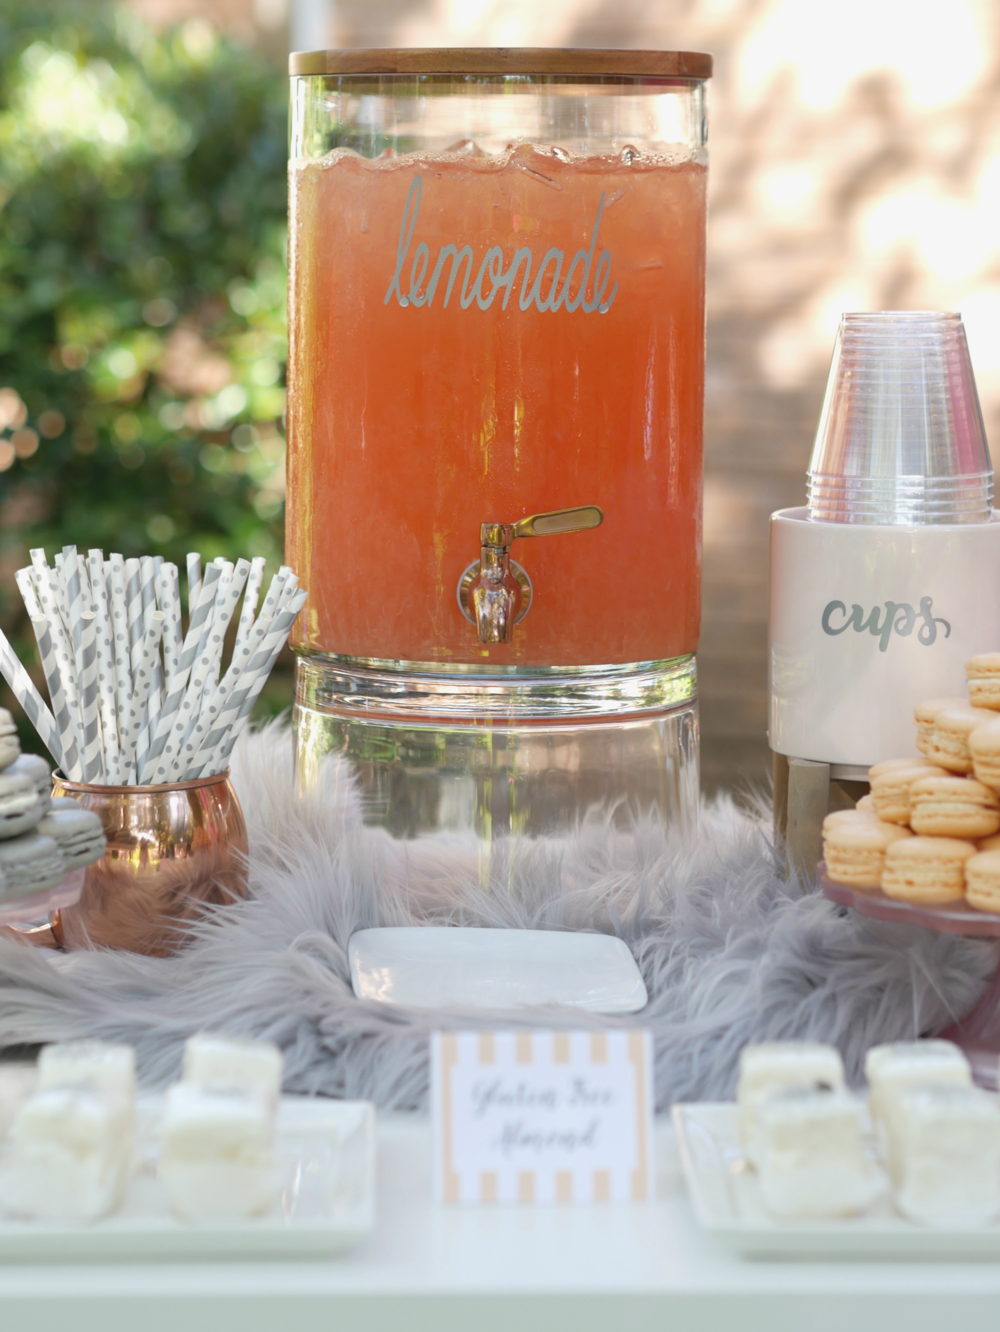 A chic lemonade stand idea, served with a variety of desserts.